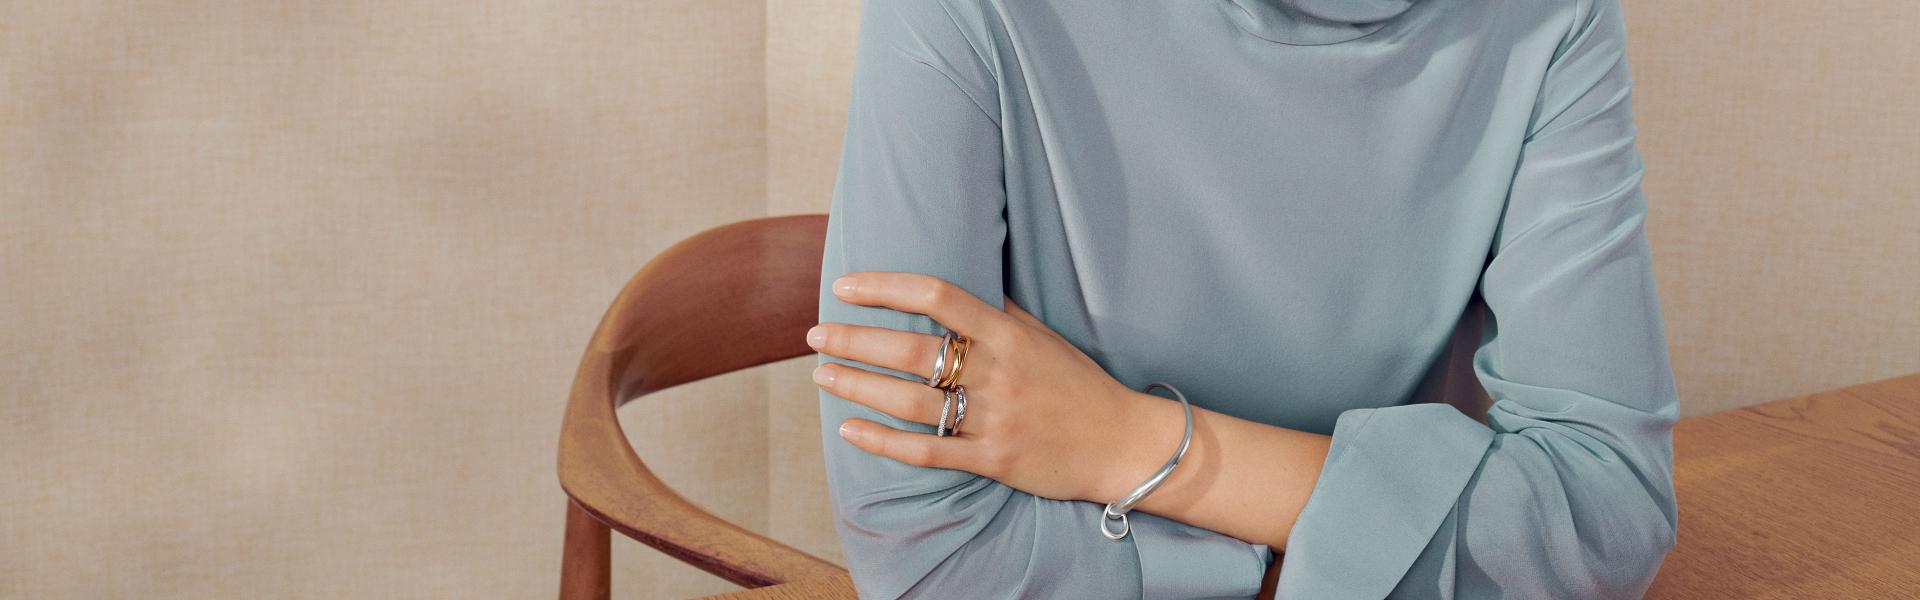 408f4277c Georg Jensen's Offspring Collection: Polished Poetry in Motion ...